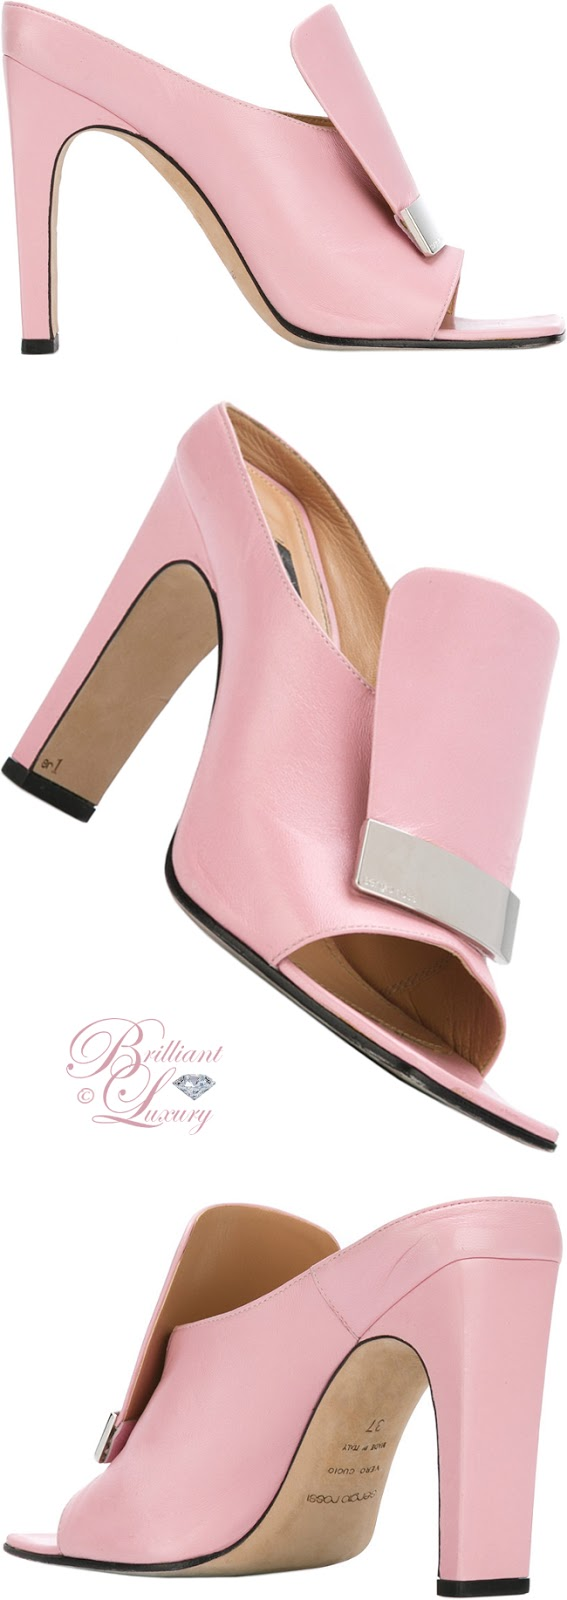 Brilliant Luxury ♦ Sergio Rossi Sr1 Open Toe Mules